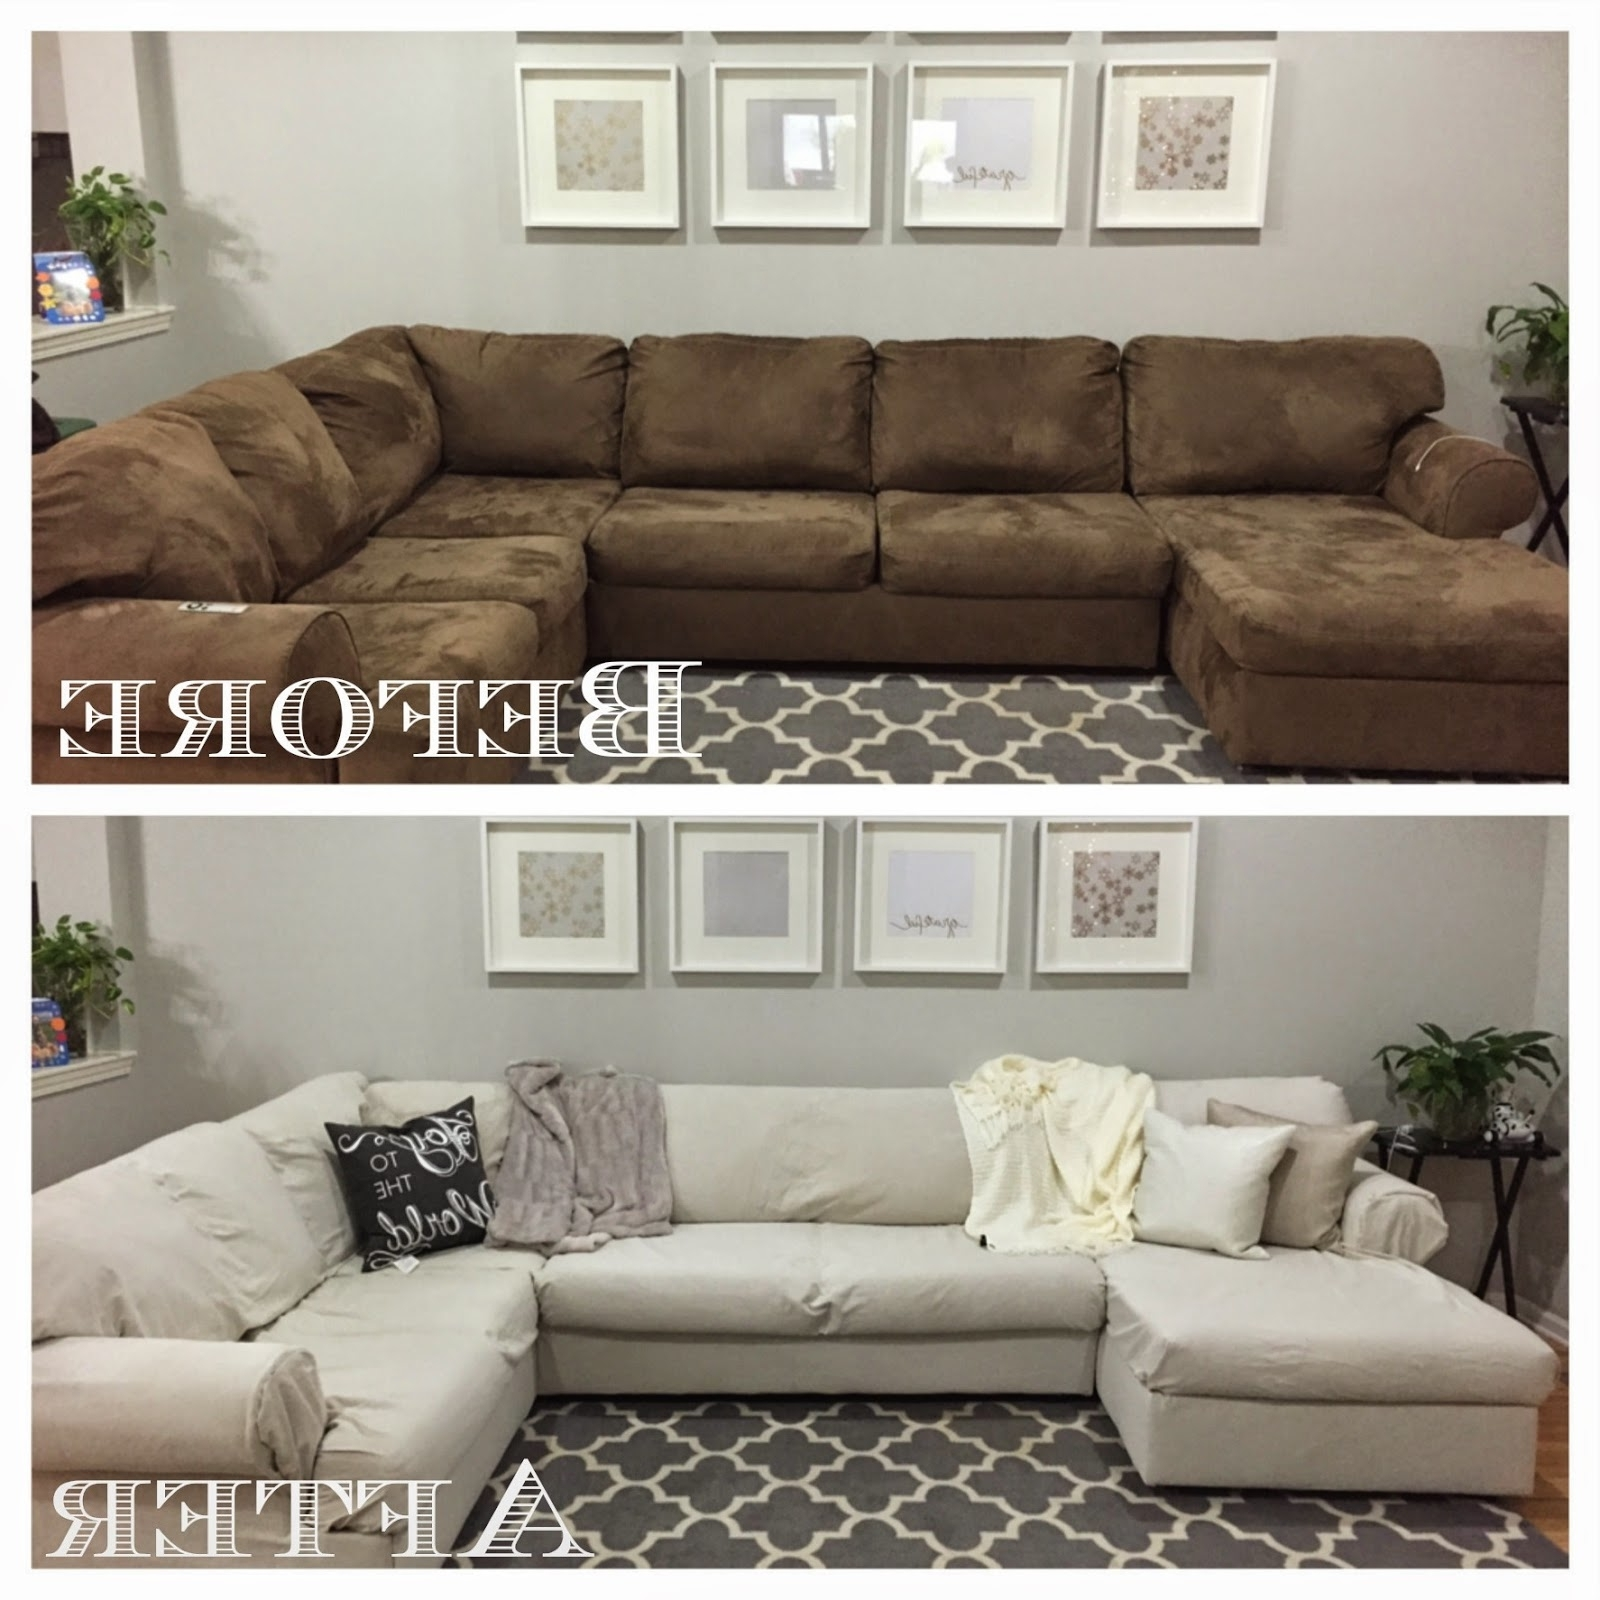 Removable Covers Sectional Sofas Within Latest Diy Sectional Sofa Cover … (View 18 of 20)